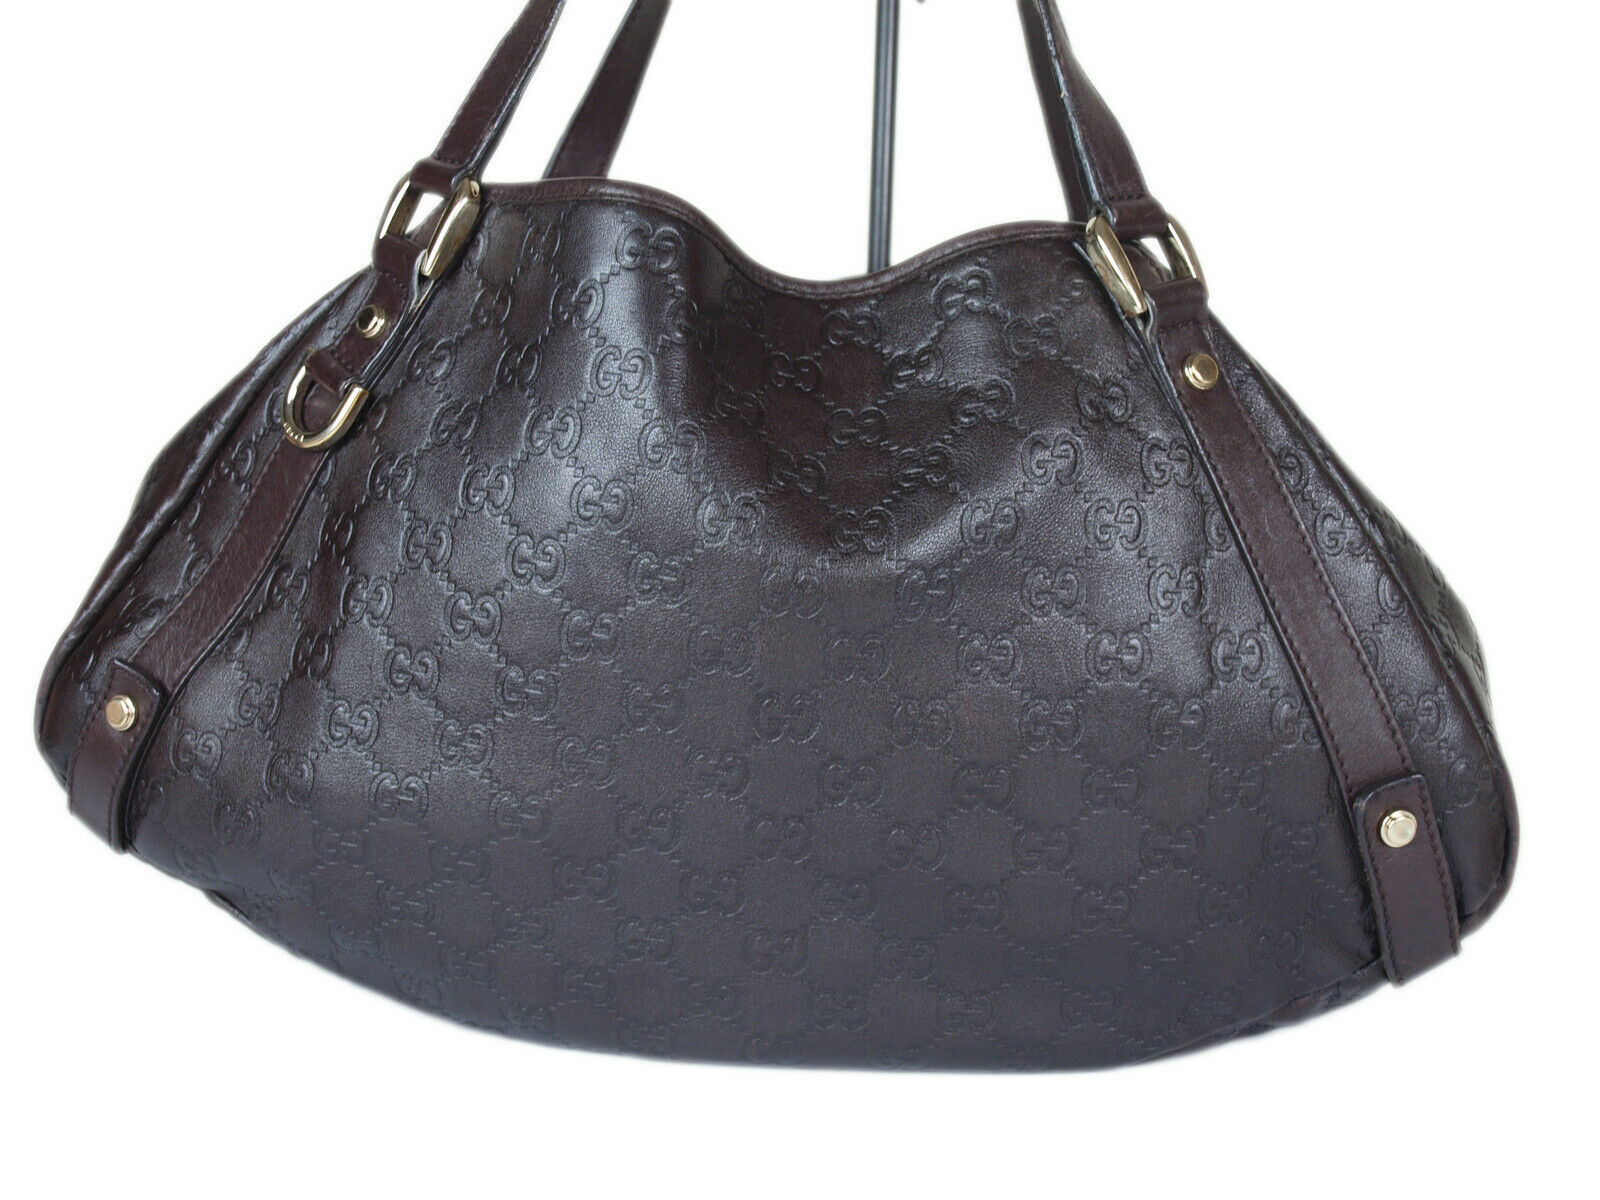 Auth GUCCI Guccissima Leather Dark Brown Shoulder Bag GT2152  image 2